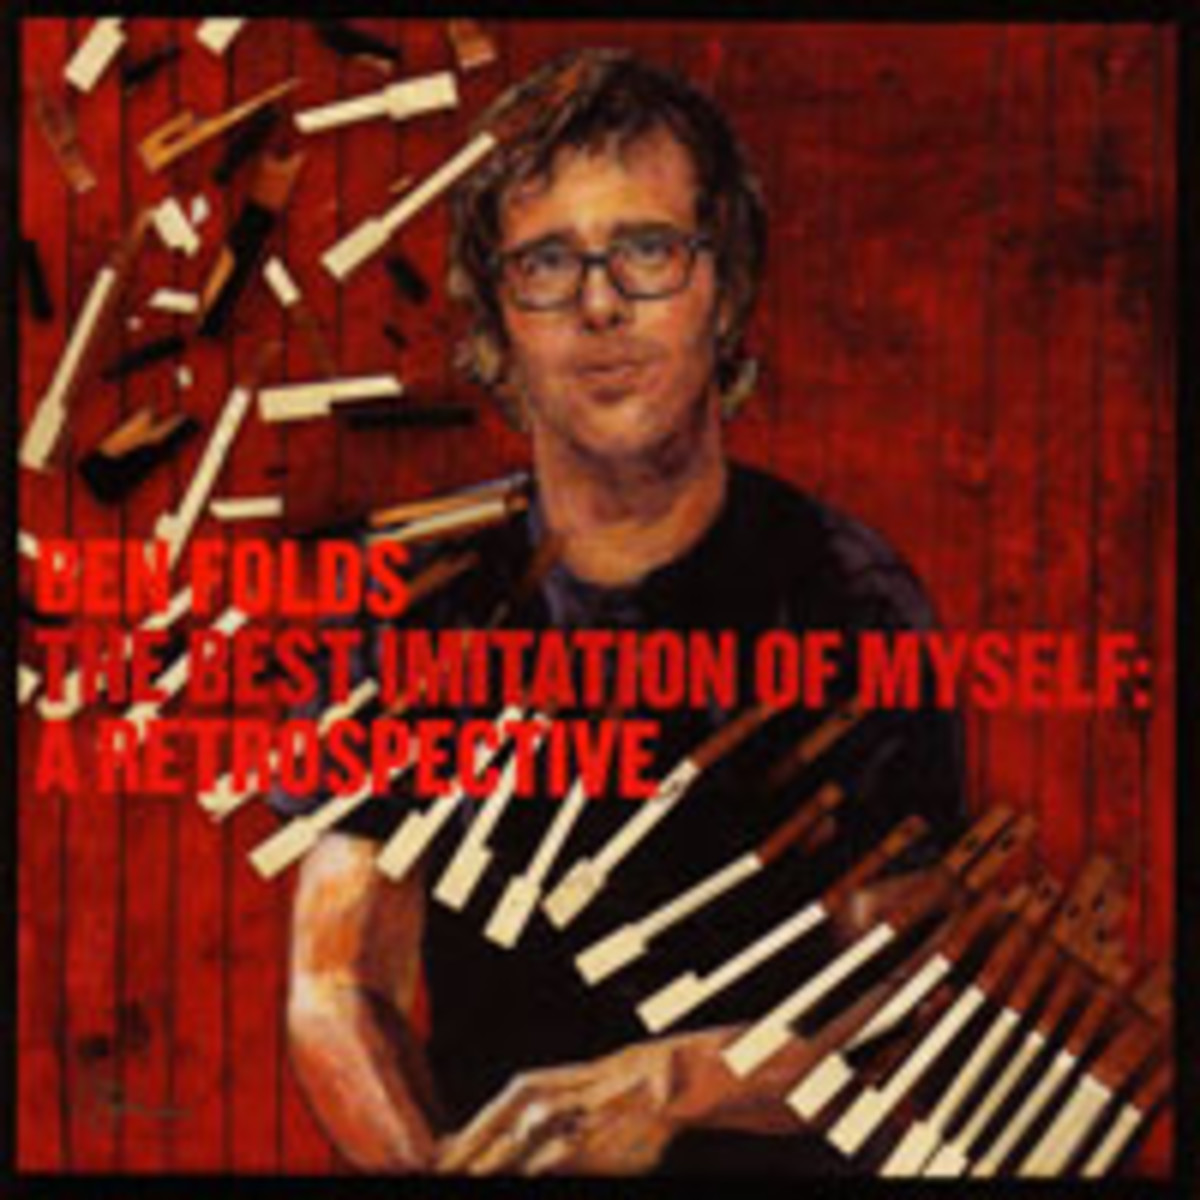 Ben Folds Best Imitation of Myself